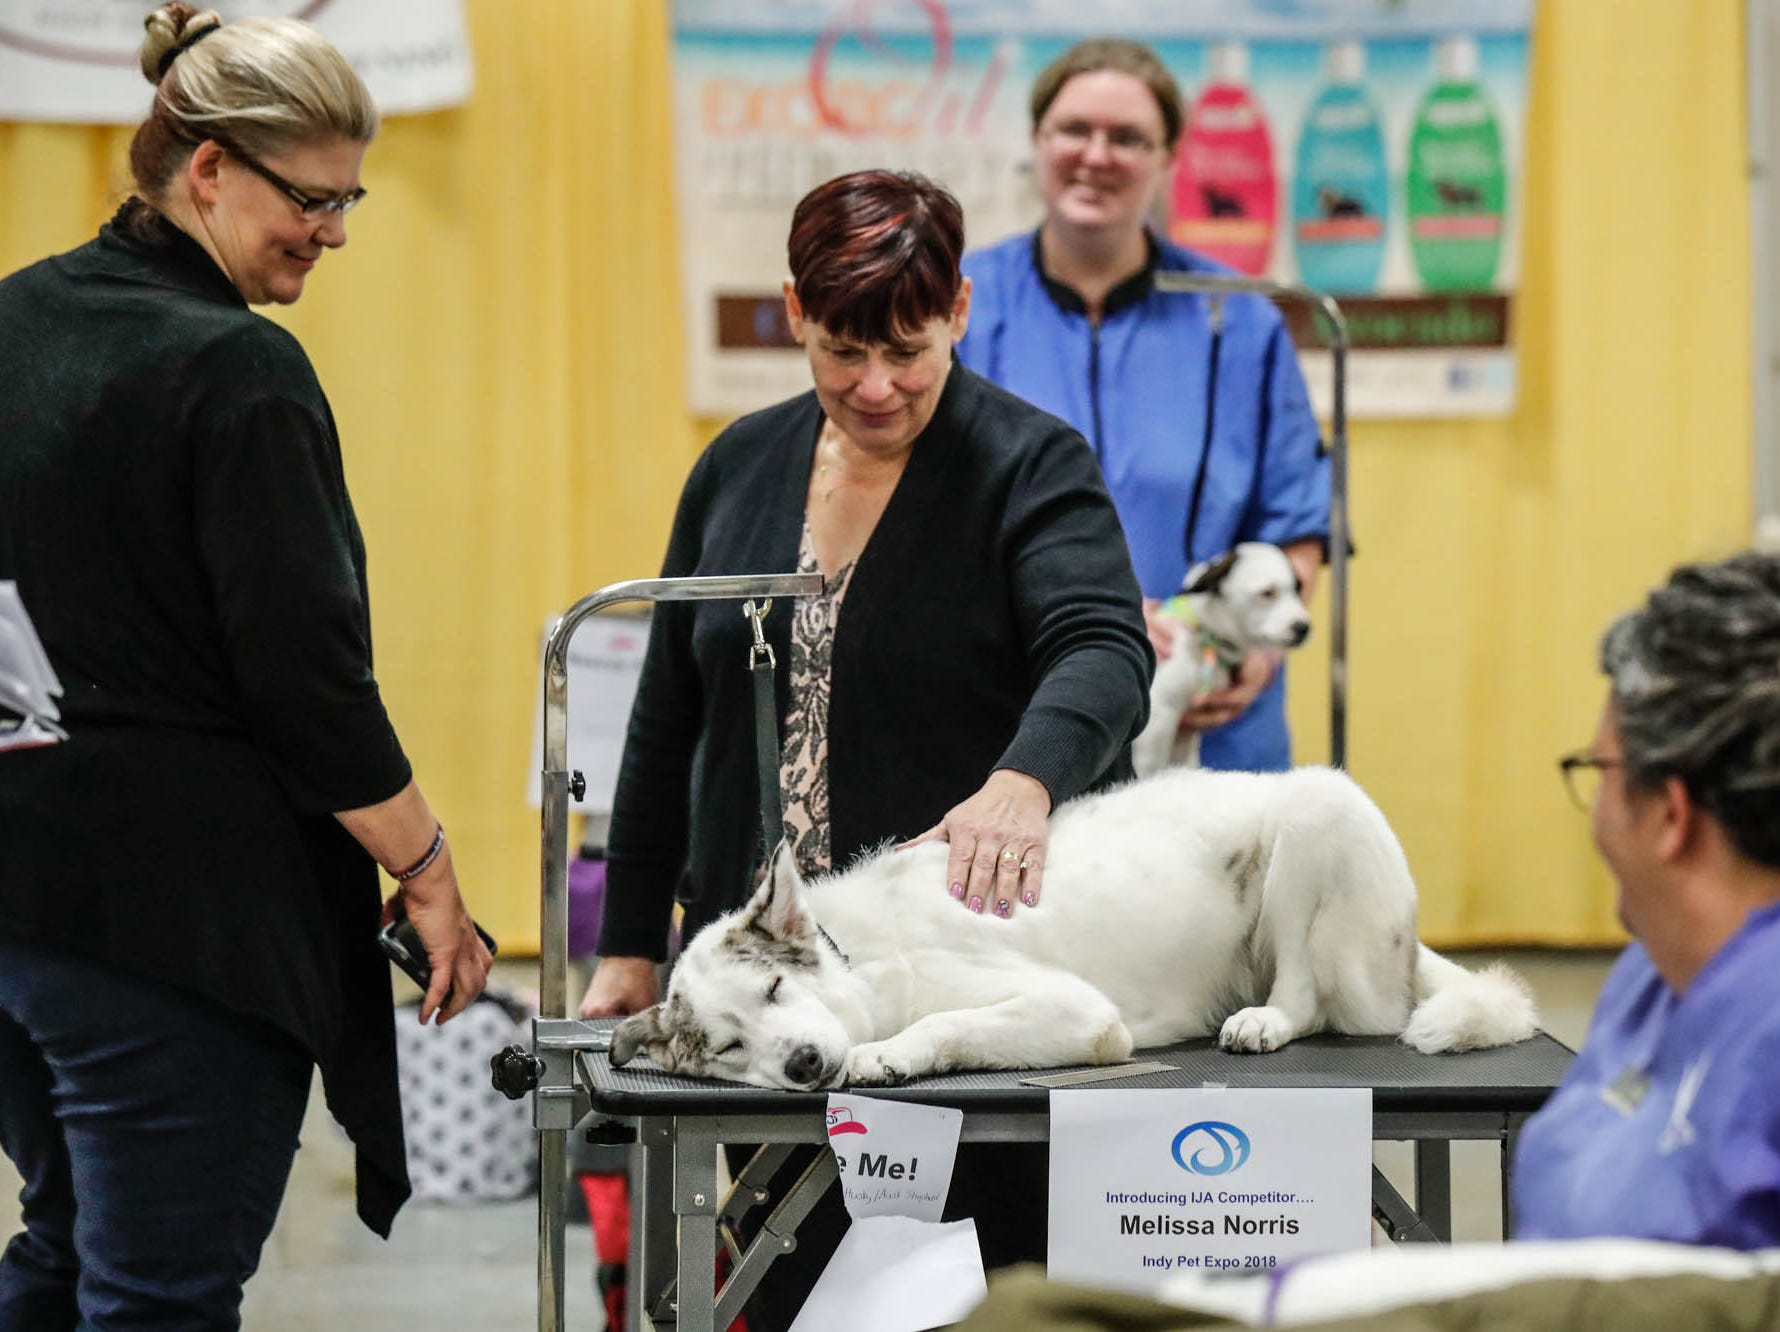 Grooming competition judge, Susan Watson, snuggles Ember, a deaf and blind dog up for adoption from Pink Heart Rescue at the Great Indy Pet Expo, held at the Indiana State Fairgrounds on Sat. Nov. 10, 2018. Ember was groomed by Melissa Norris.